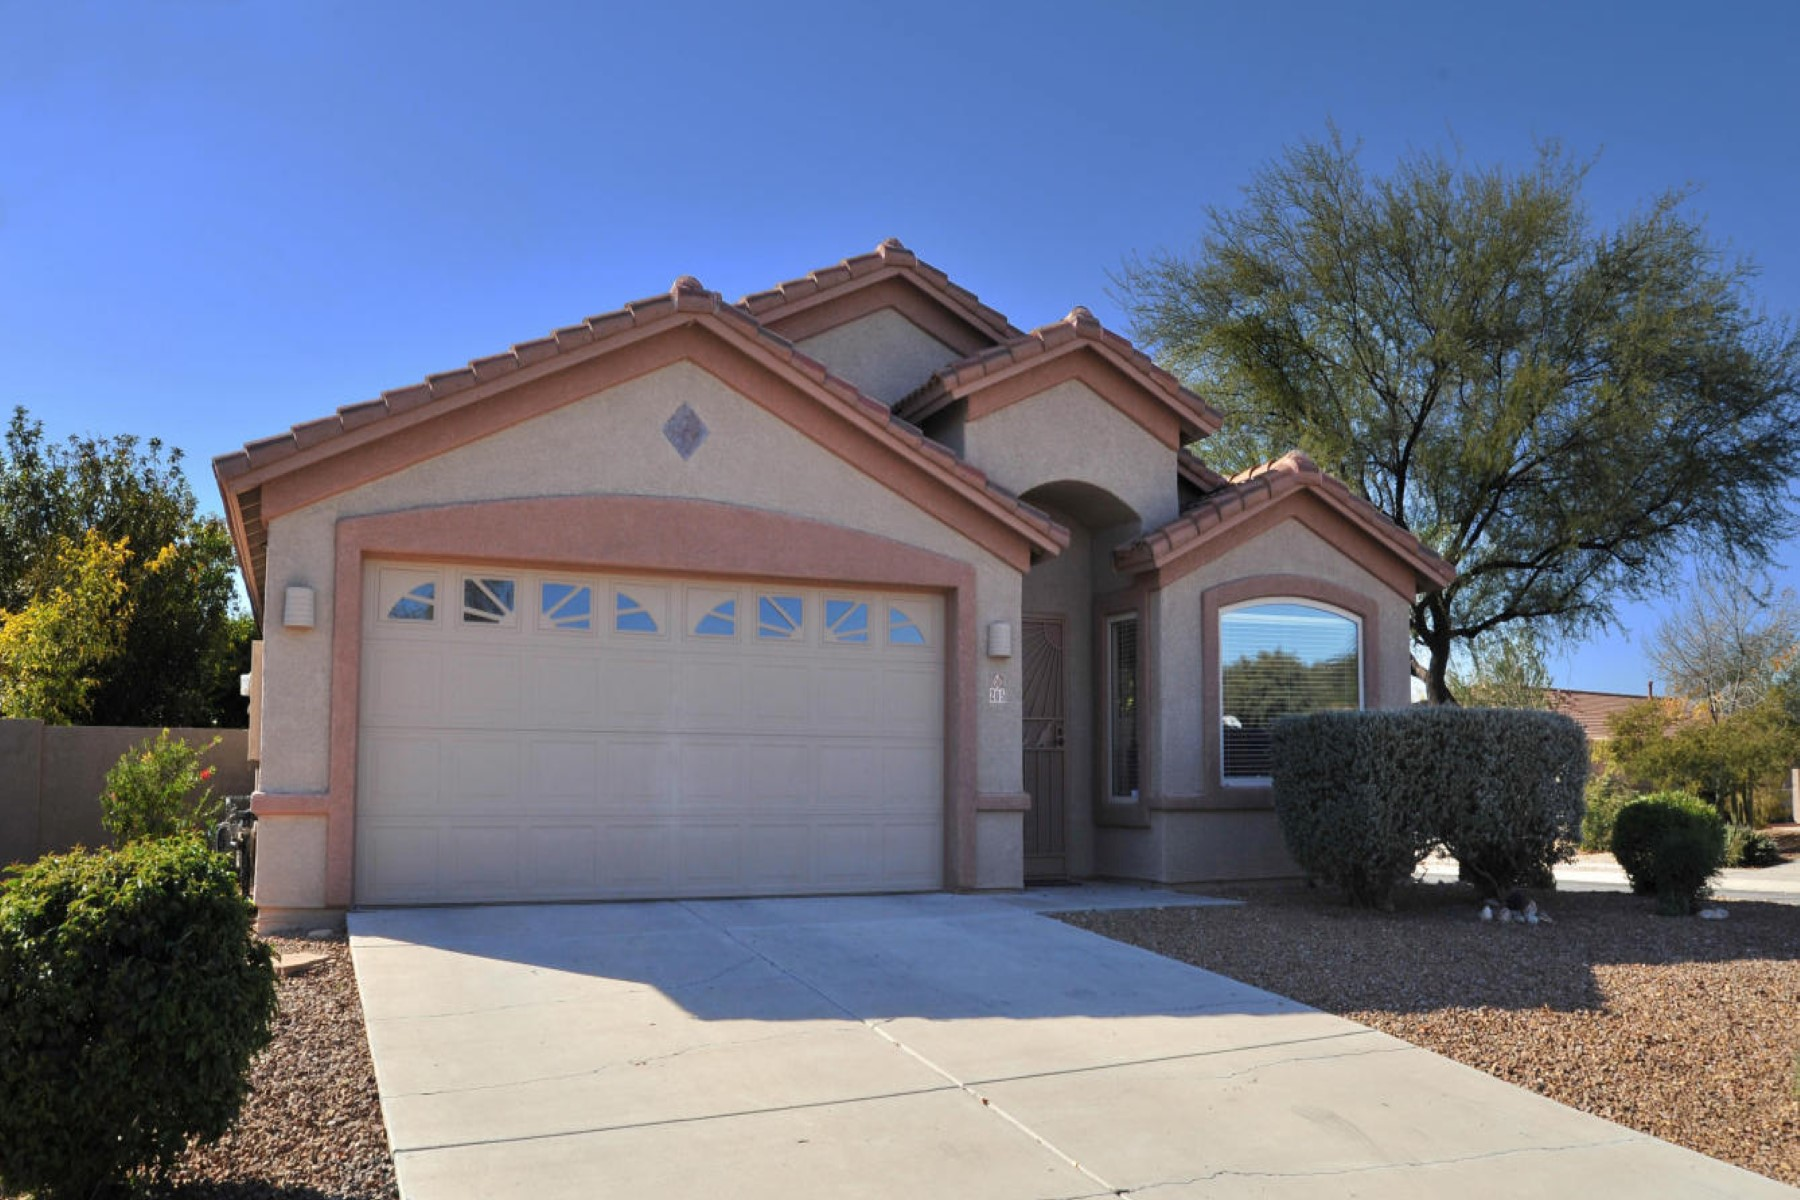 Single Family Home for Sale at Wonderful Oro Valley home 205 W Ashley Canyon Way Oro Valley, Arizona 85755 United States